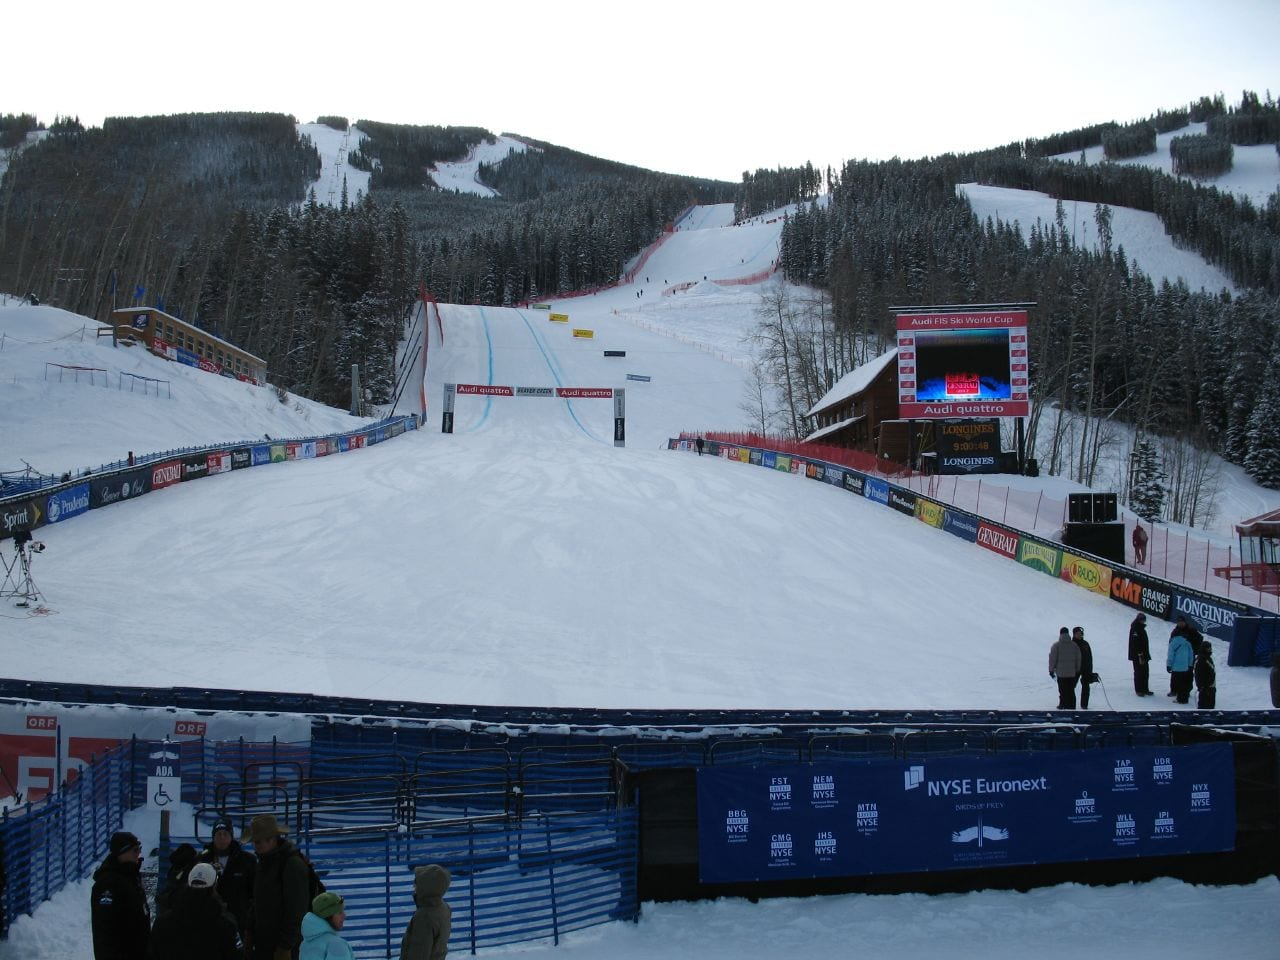 Birds of Prey World Cup Run, Beaver Creek, CO